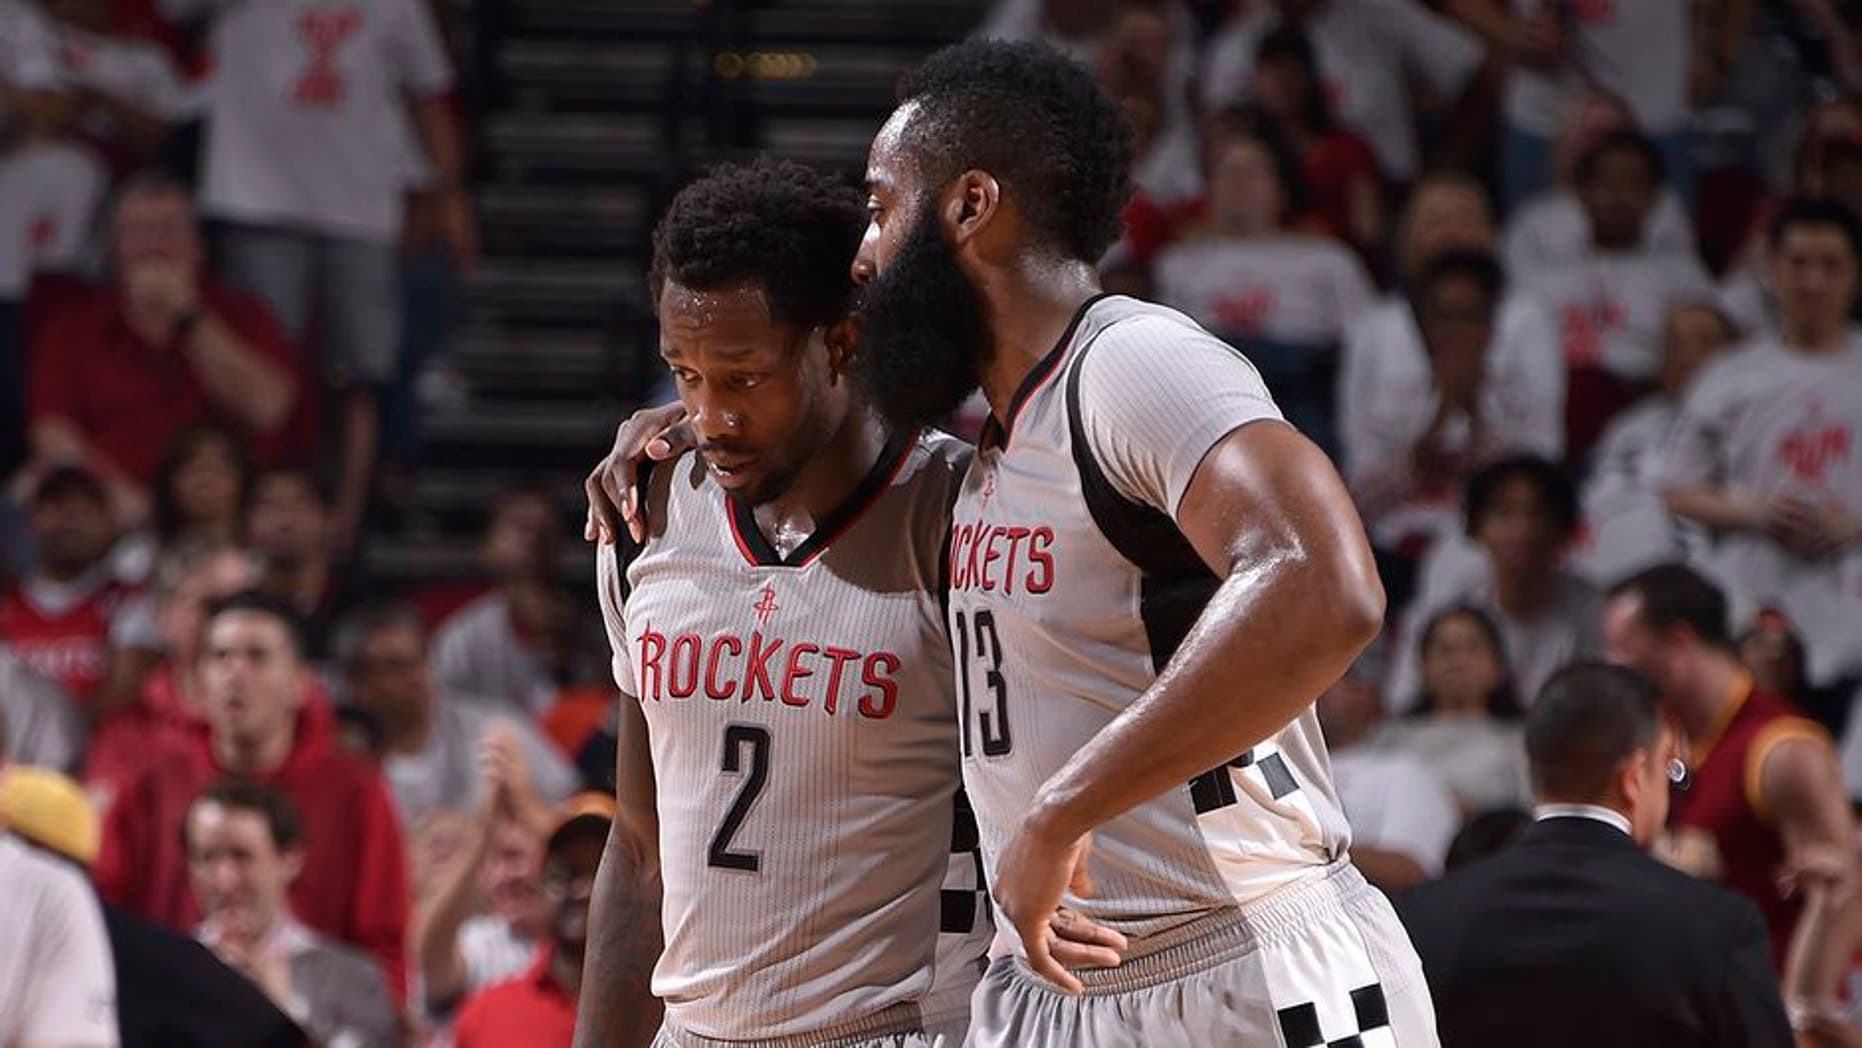 HOUSTON, TX - MAY 7: Patrick Beverley #2 and James Harden #13 of the Houston Rockets talk during the game against the San Antonio Spurs in Game Four of the Western Conference Semifinals of the 2017 NBA Playoffs on May 7, 2017 at the Toyota Center in Houston, Texas. NOTE TO USER: User expressly acknowledges and agrees that, by downloading and or using this photograph, User is consenting to the terms and conditions of the Getty Images License Agreement. Mandatory Copyright Notice: Copyright 2017 NBAE (Photo by Bill Baptist/NBAE via Getty Images)